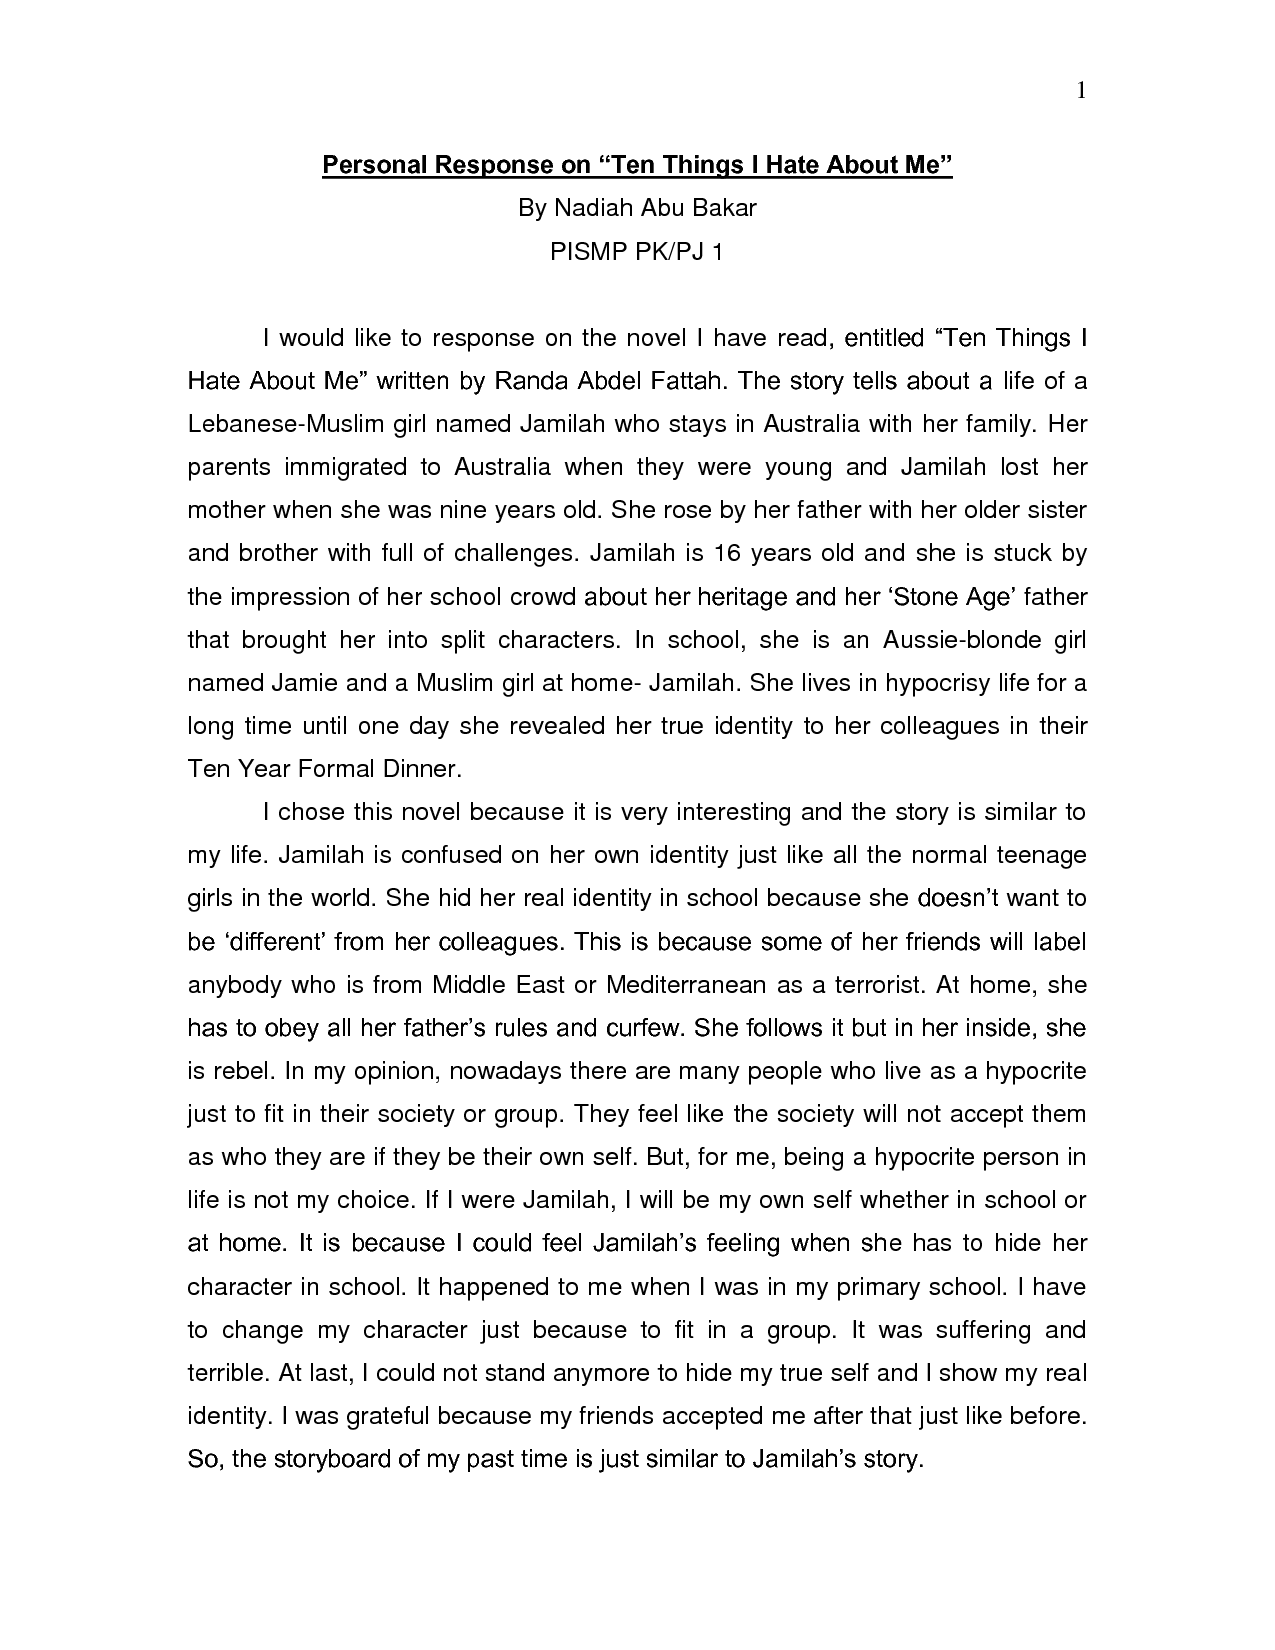 Essay abstract page apa